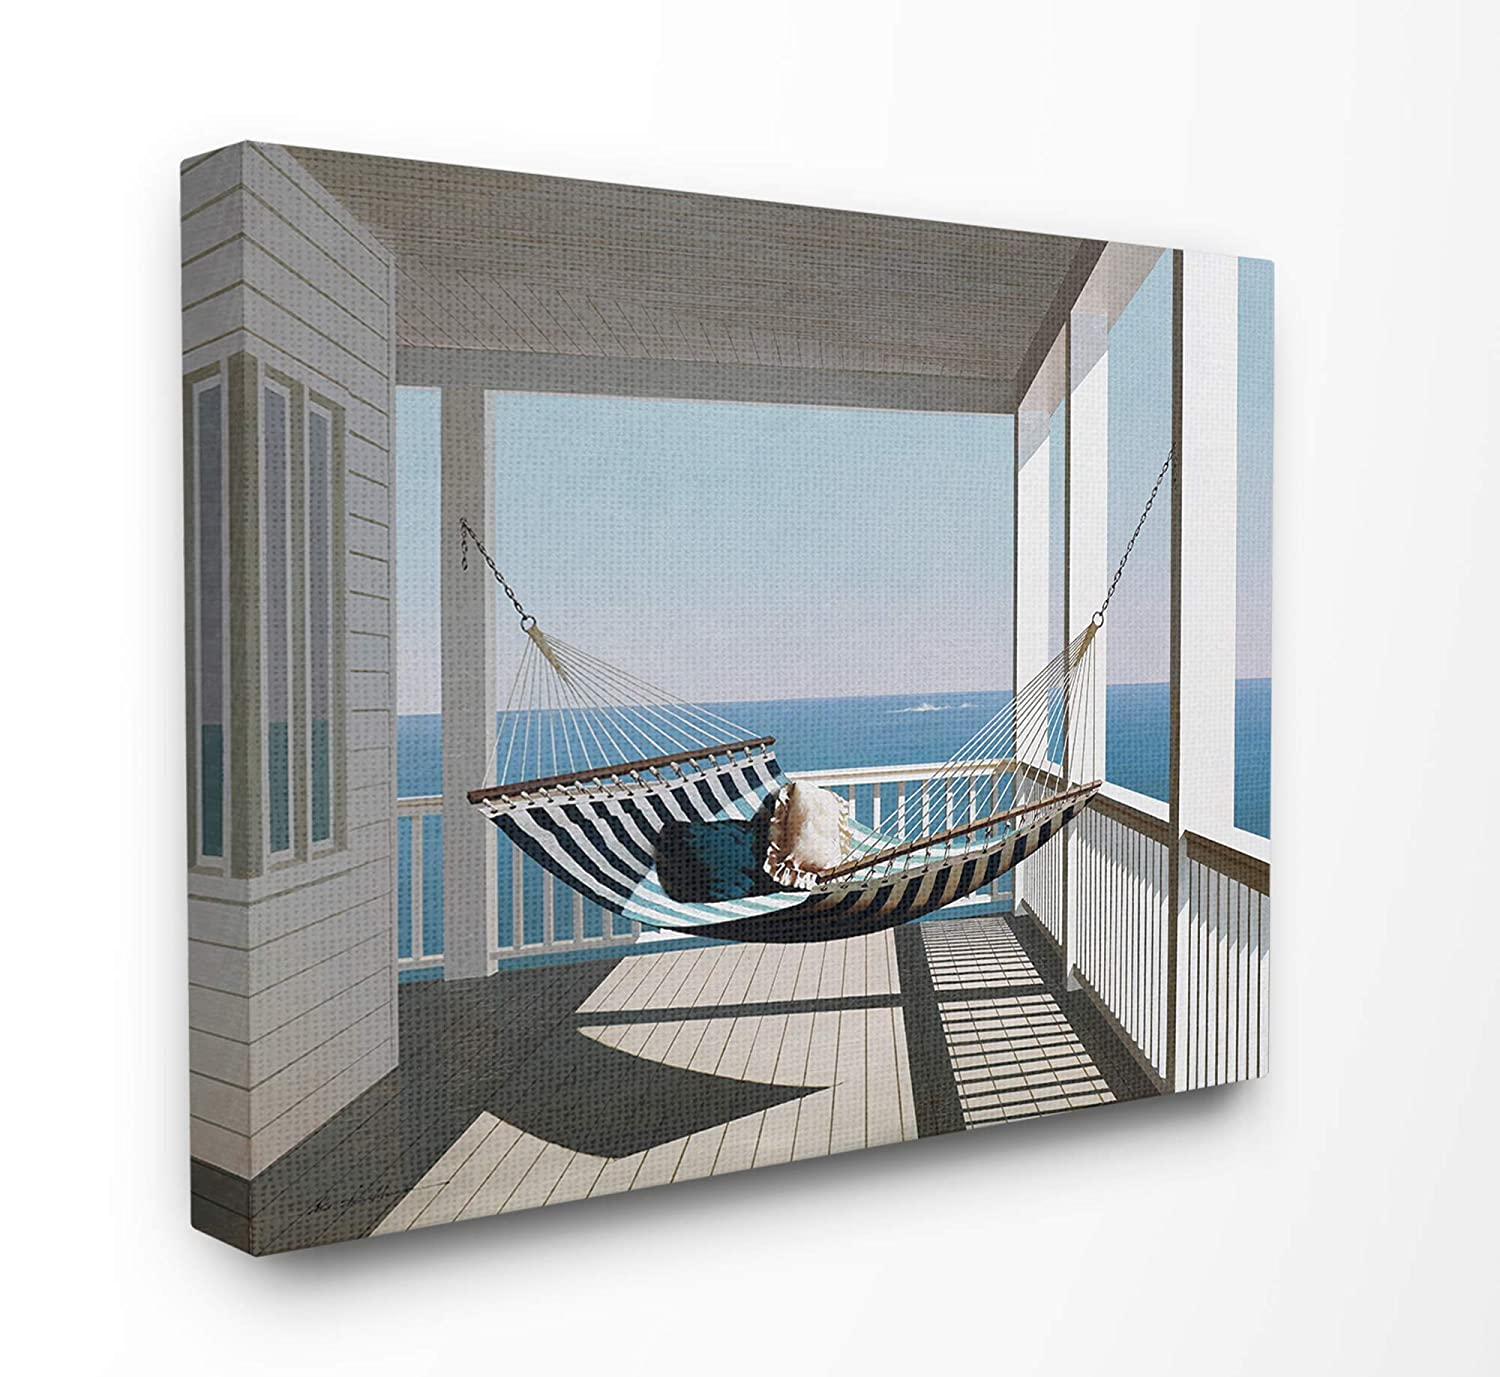 The Stupell Home Decor Blue and White Striped Hammock on The Beach House Porch Framed Giclee Texturized Art Multi-Color 11 x 14